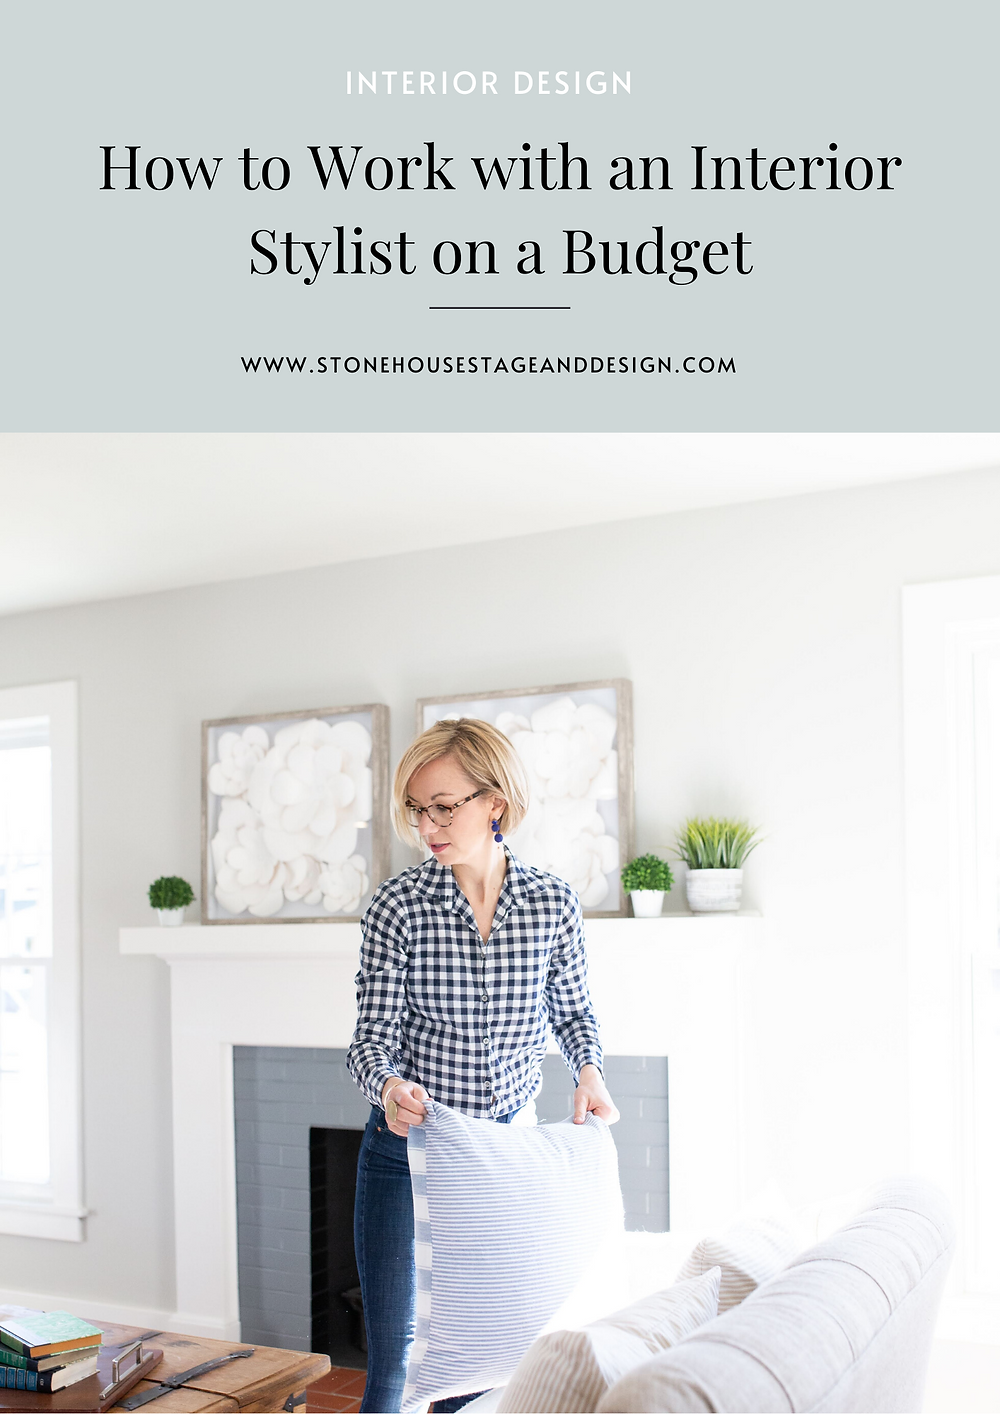 How to Work with an Interior Stylist on a Budget